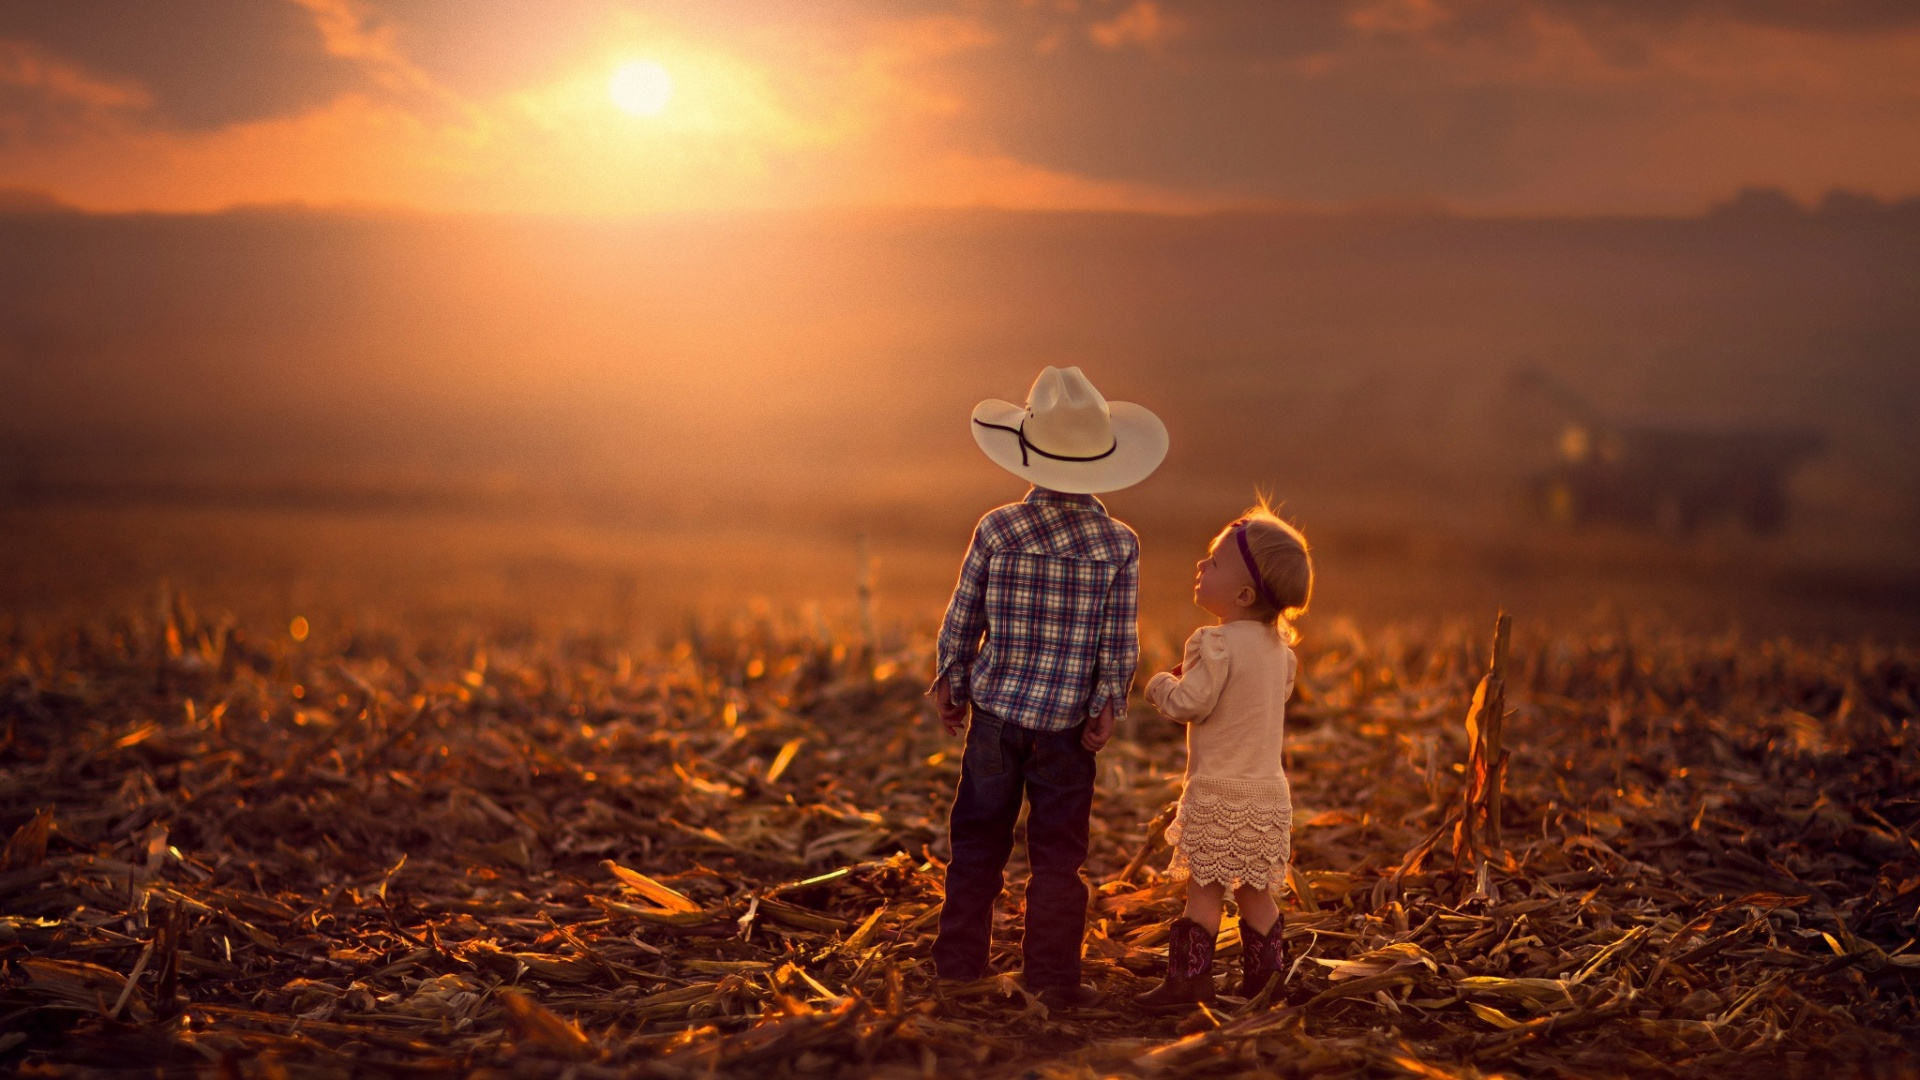 Love child Wallpaper Hd : children Boy And Girl Sunset Wallpapers - 1920x1080 - 584701